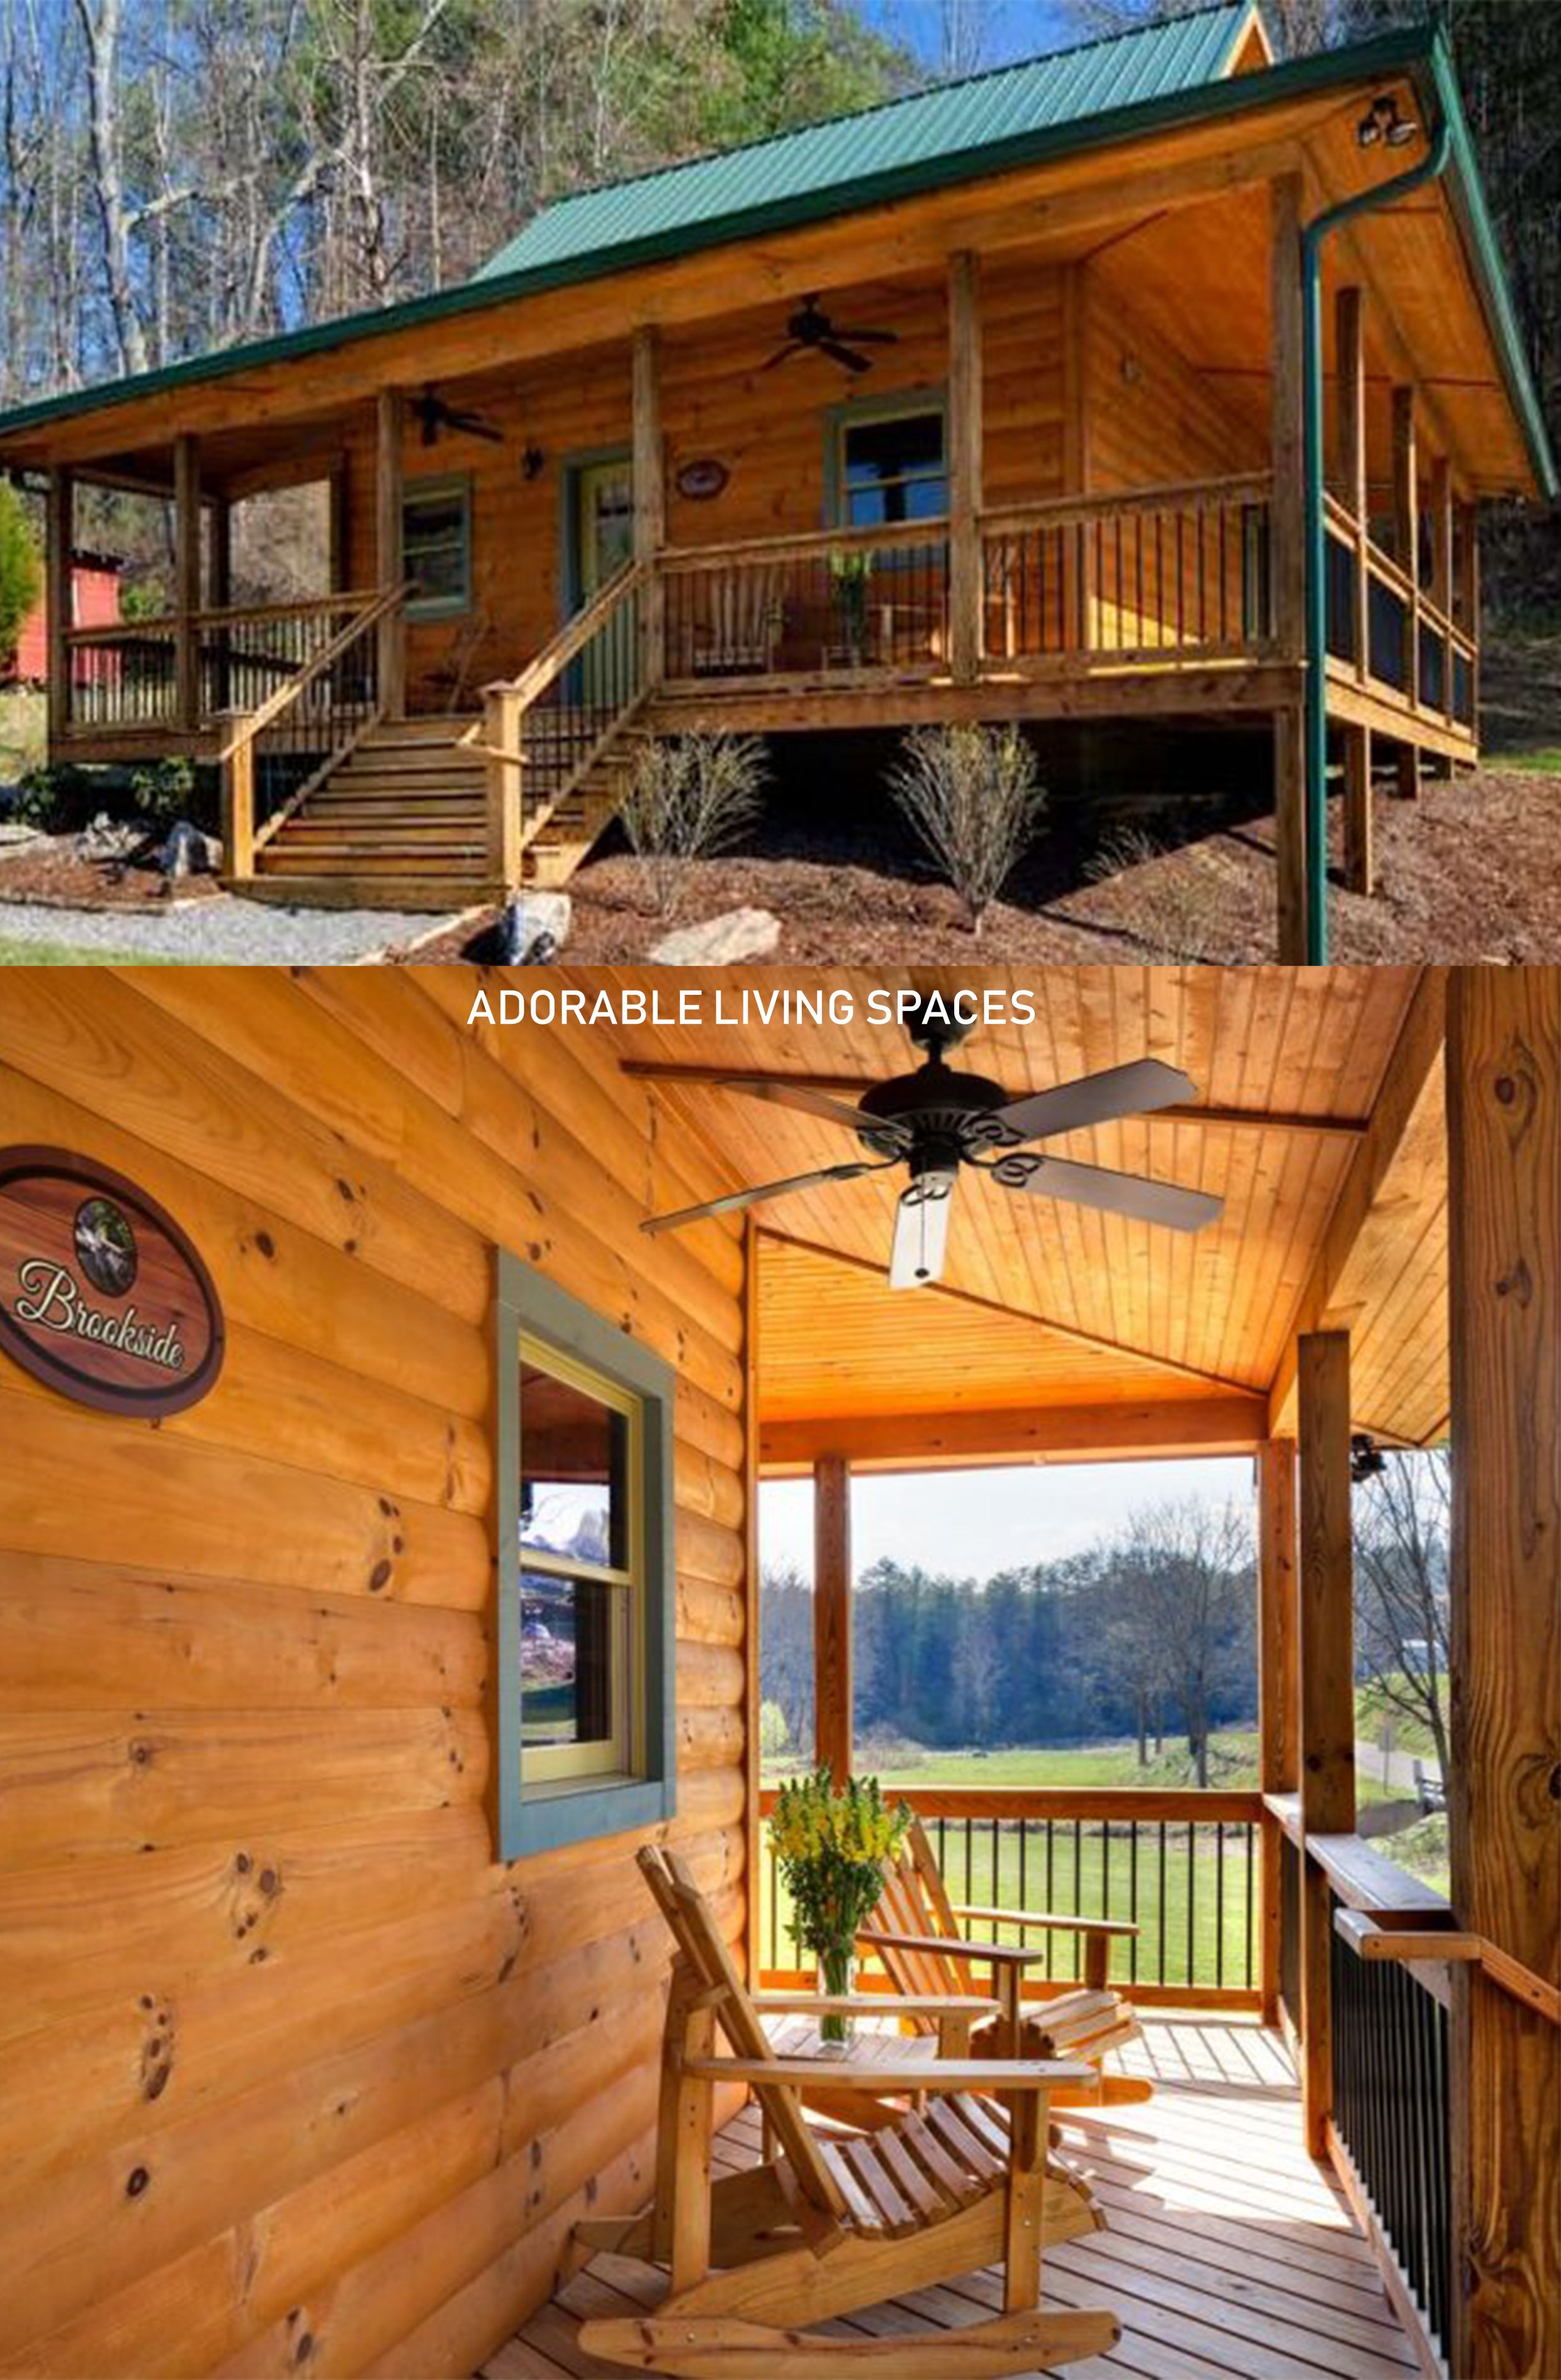 Cabin in the Woods With a Wonderful Wrap Around Porch   Cabin, Cabins in  the woods, Wrap around porch